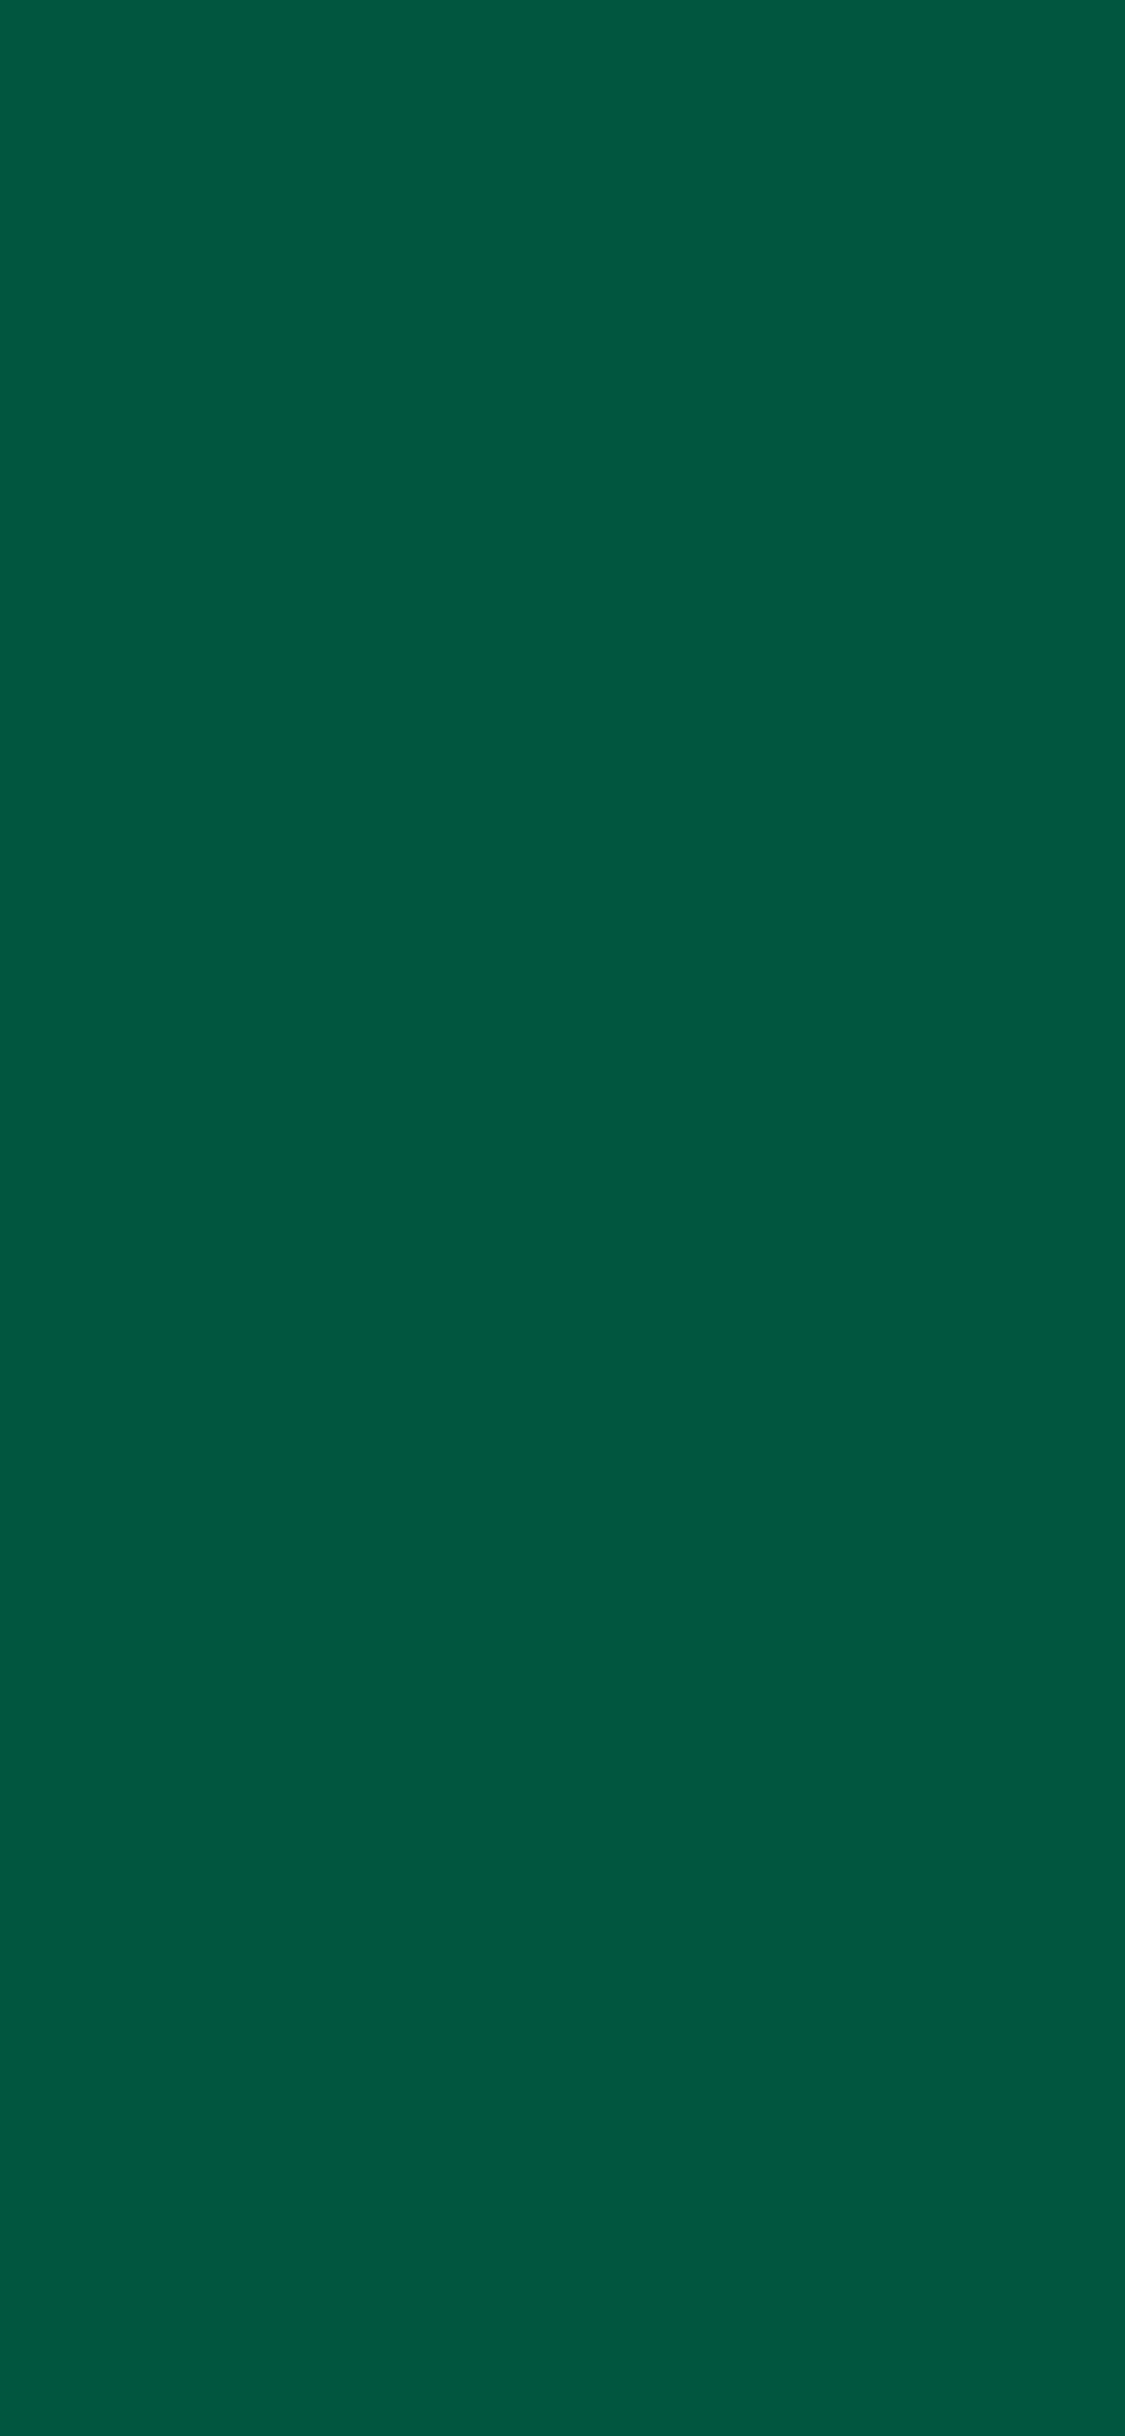 1125x2436 Sacramento State Green Solid Color Background